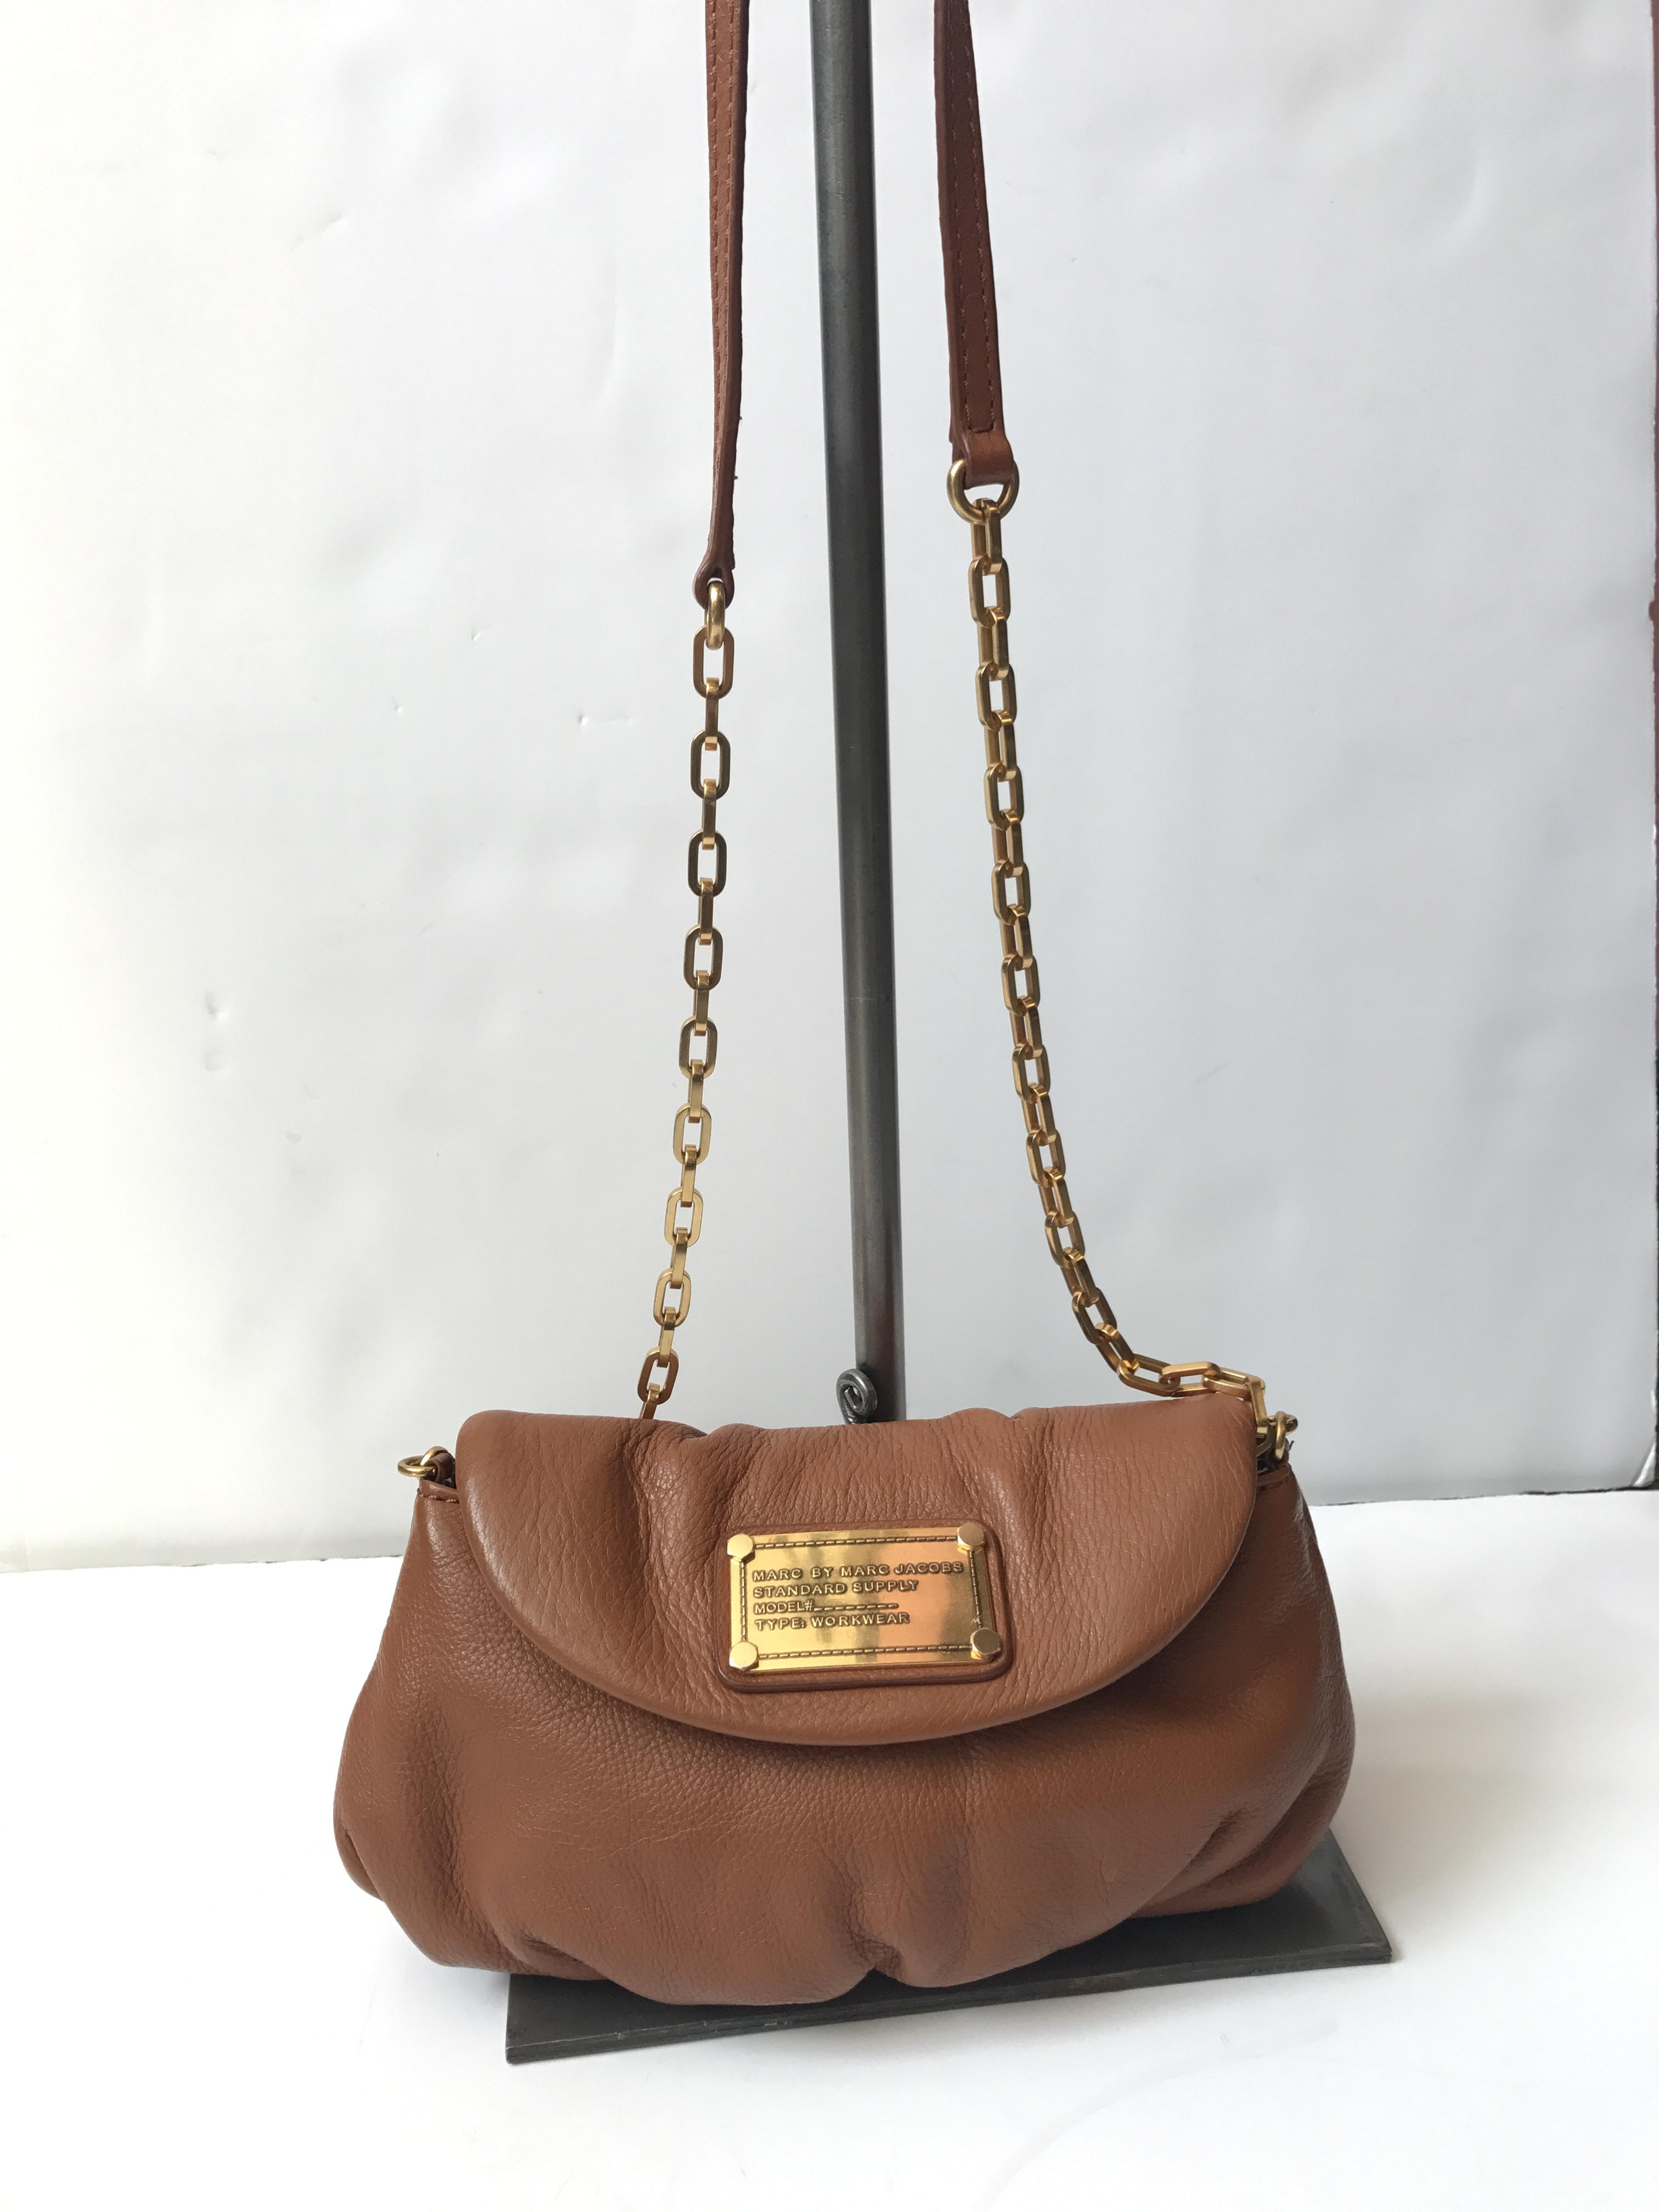 Marc Jacobs Purses, Handbags Price: $98.99